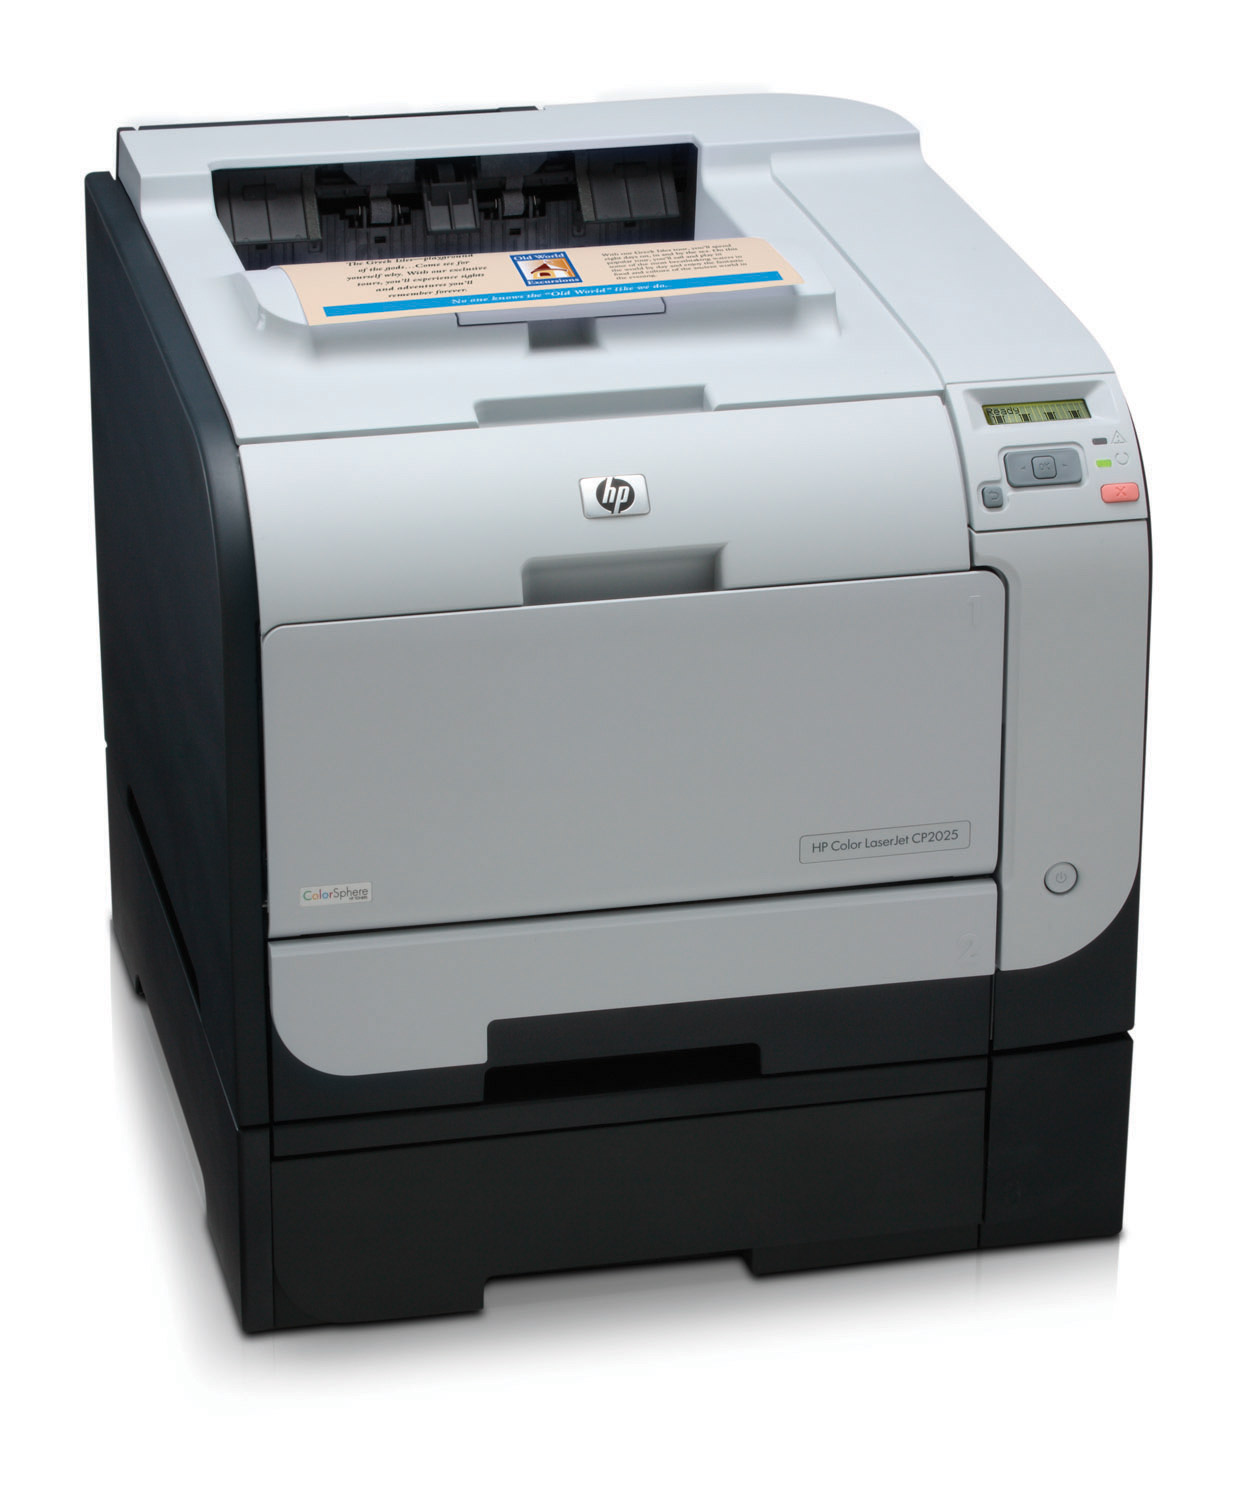 HP Color LaserJet CP2025x Printer